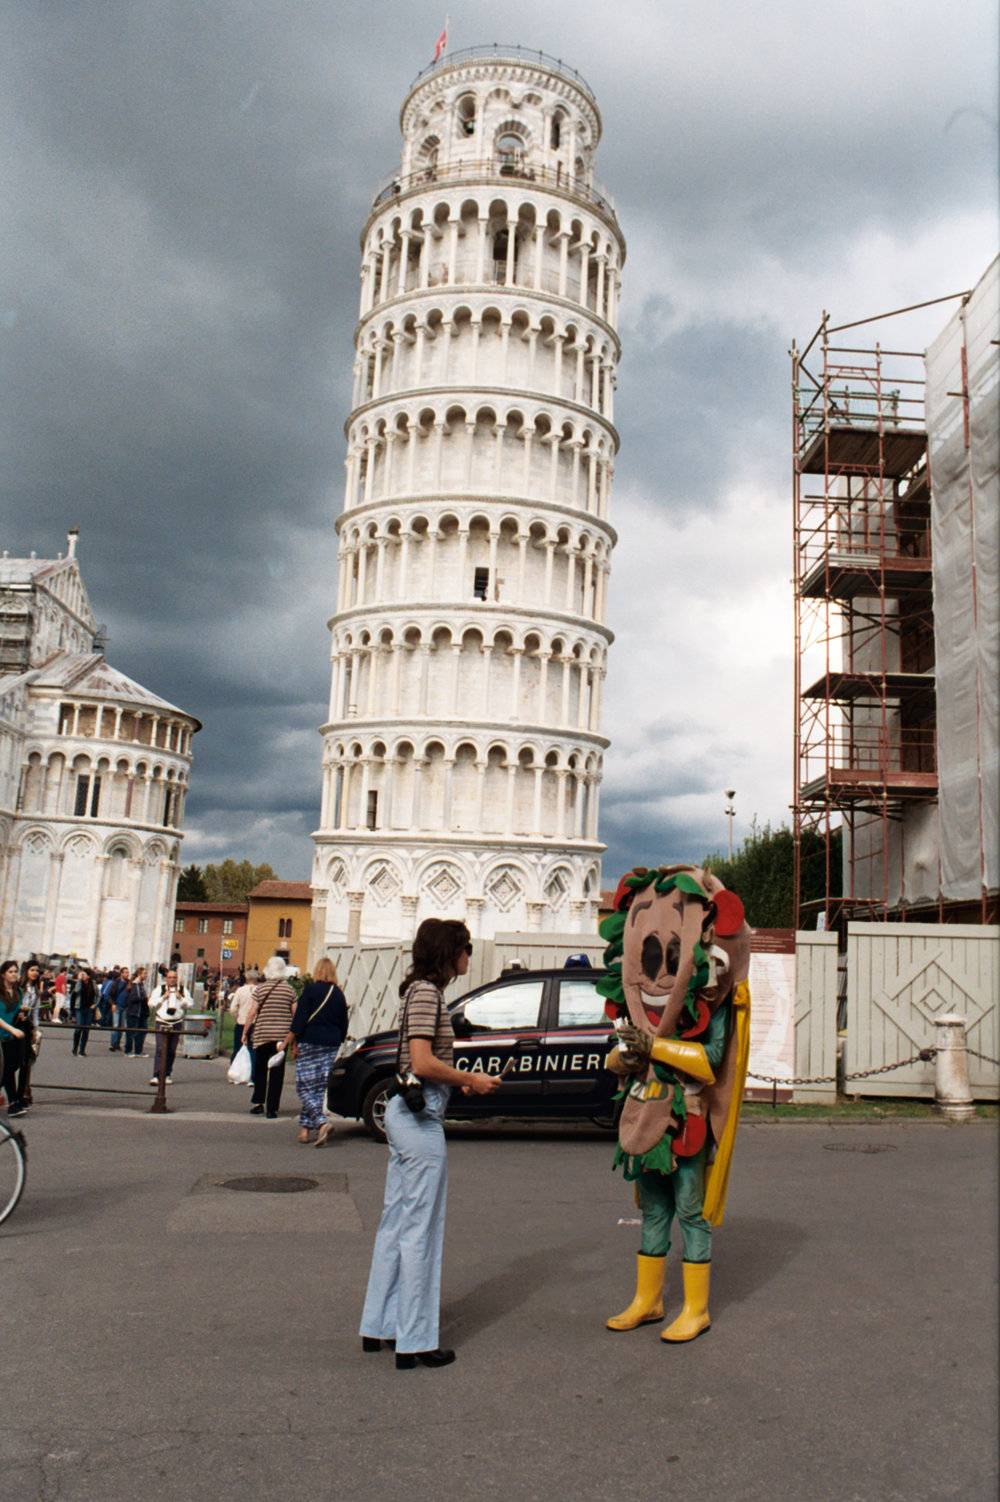 Tower of Subway, Pisa, Italy